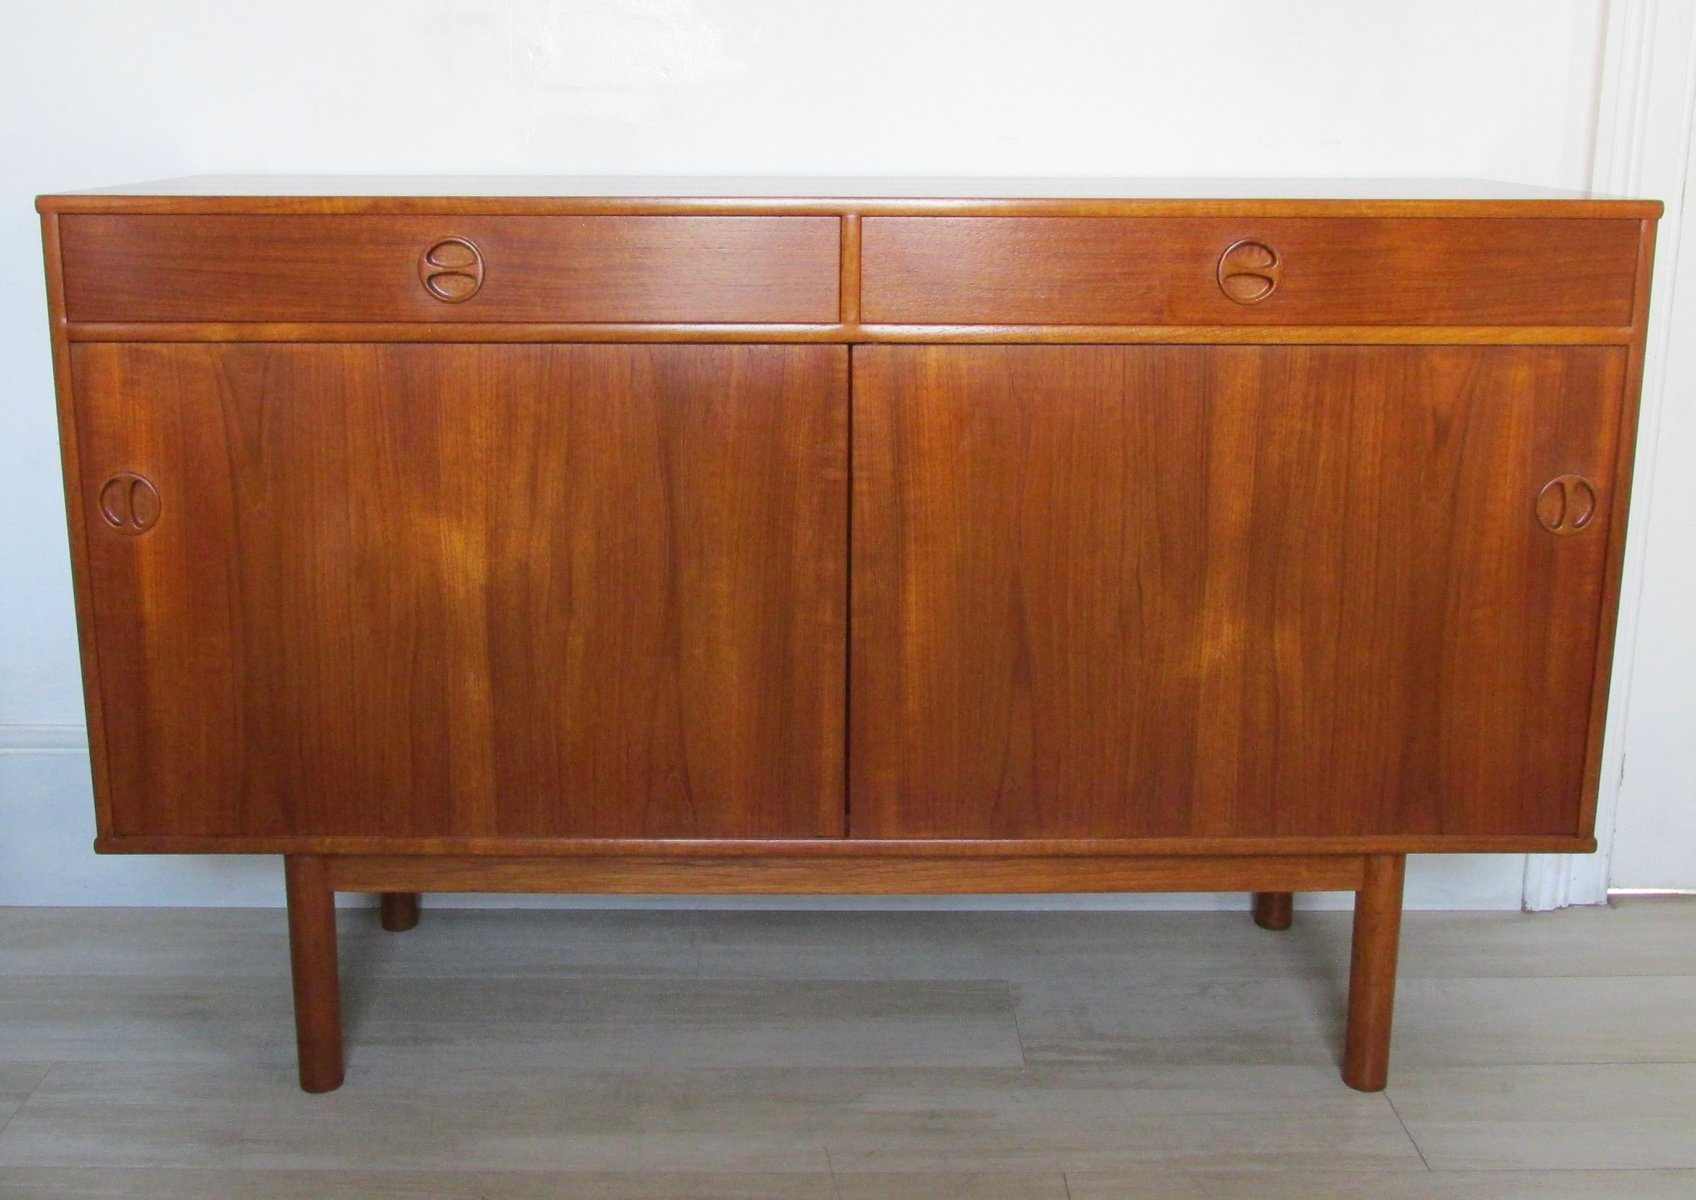 skandinavisches vintage teak sideboard 1960er bei pamono kaufen. Black Bedroom Furniture Sets. Home Design Ideas